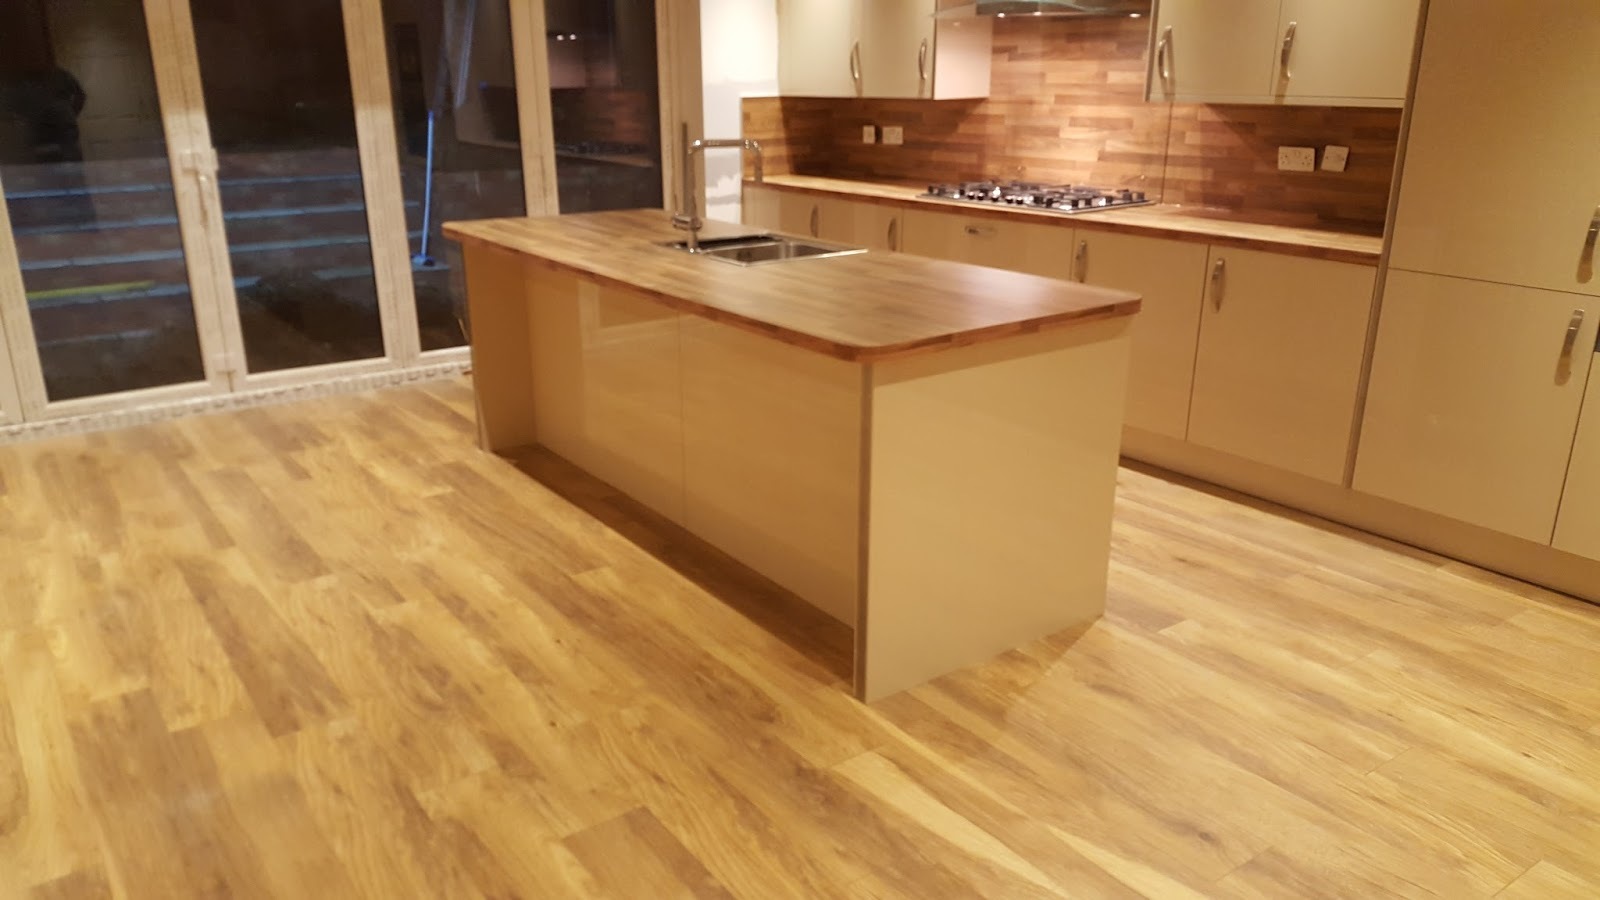 Elm kitchens and joinery january 2016 - Kitchen backboards ...